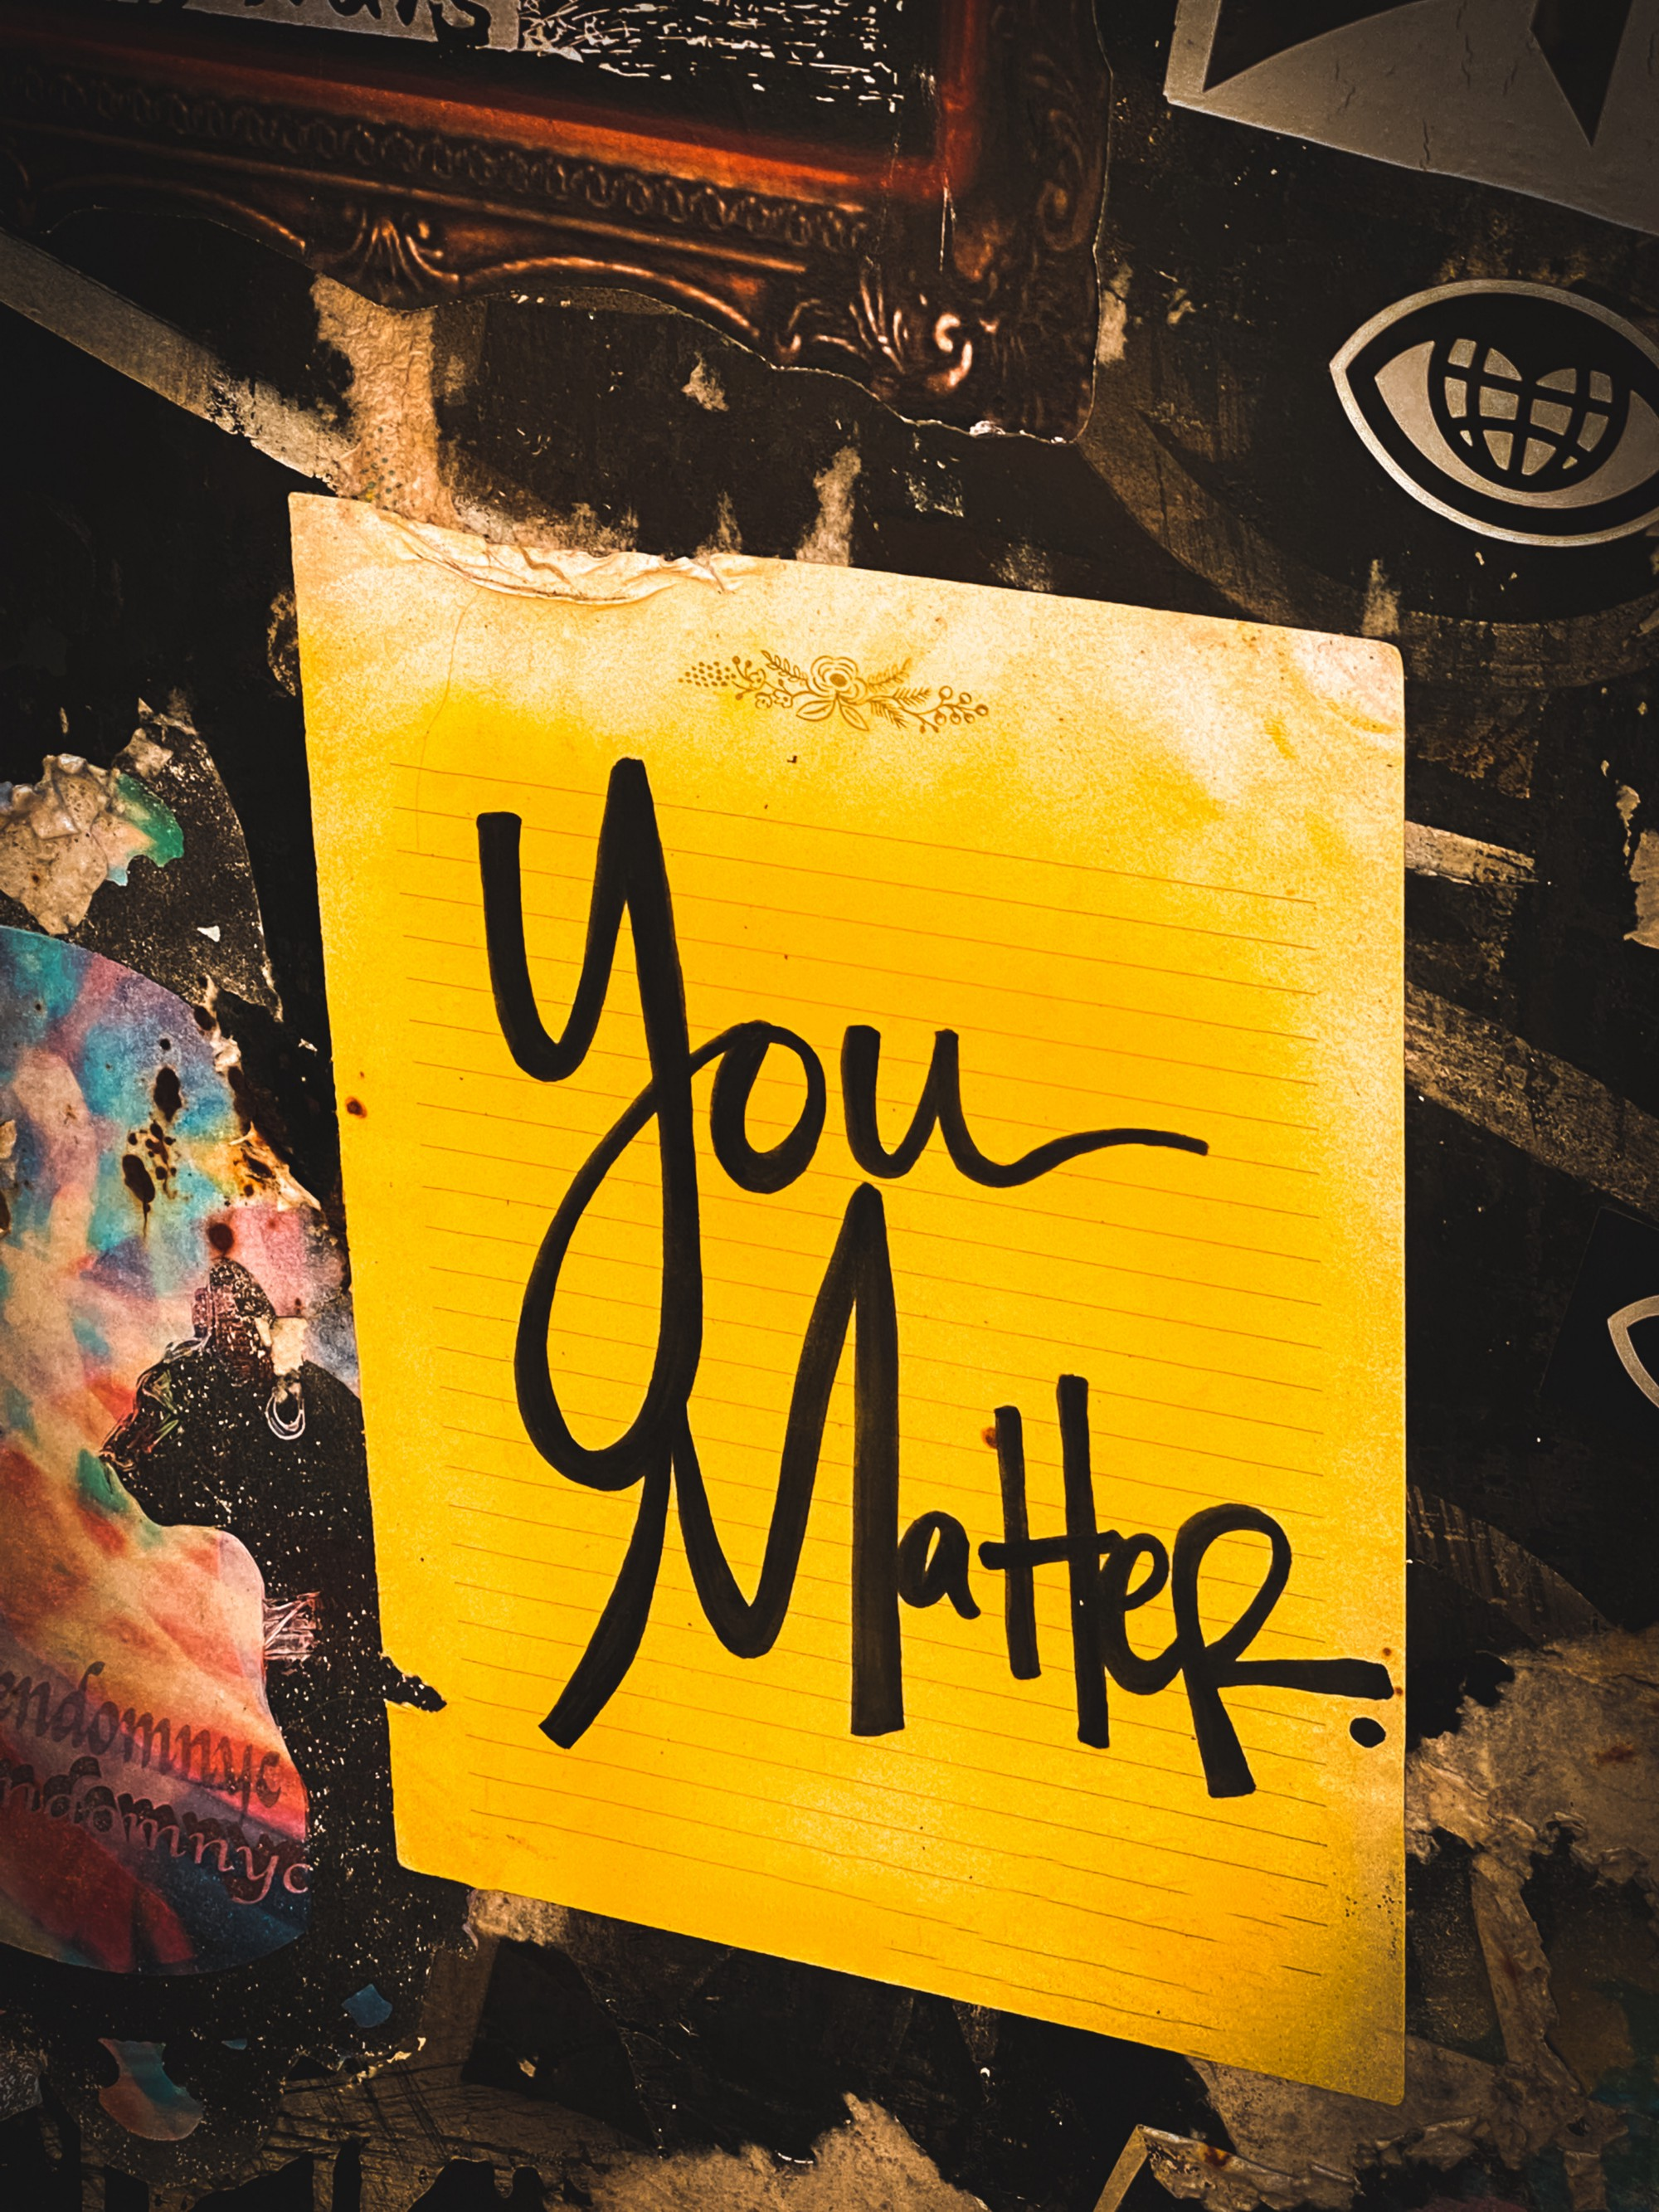 You matter: Becoming a valuable and notaeperson